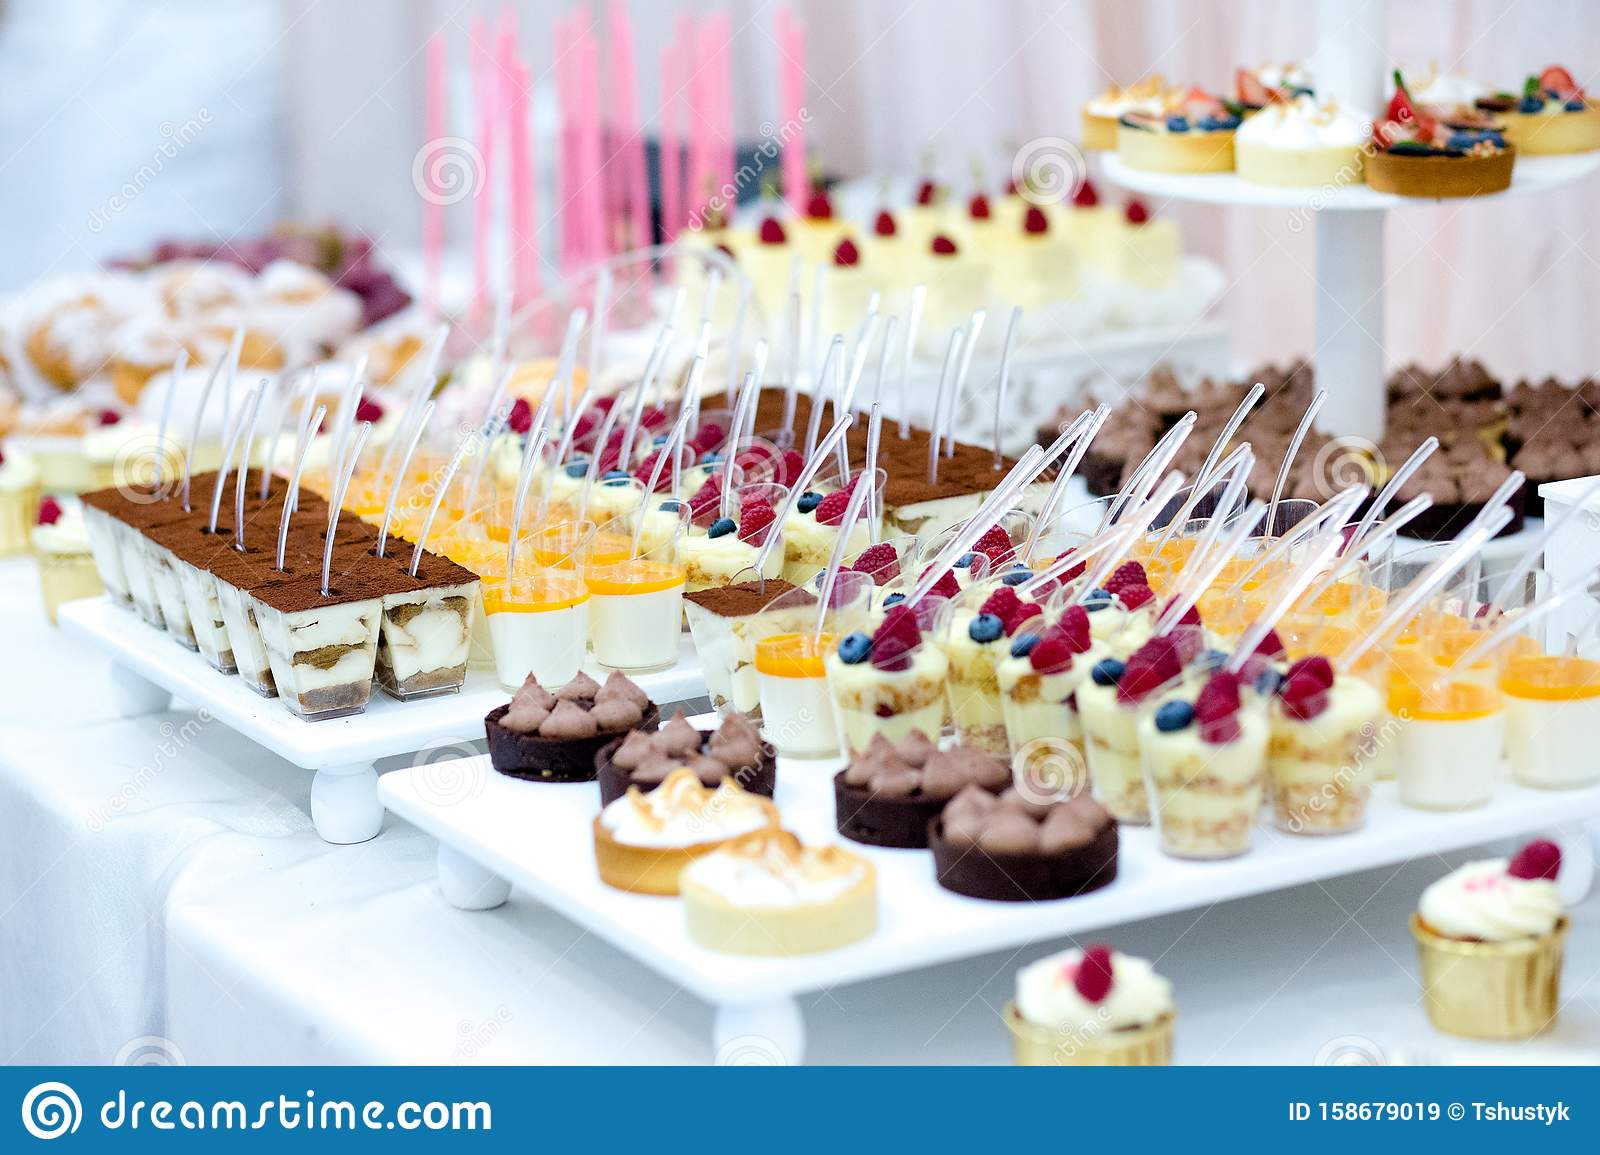 Candy Bar With Macarons Cakes Cake Pops Close Up Stock Image Image Of Lace Macaroon 158679019